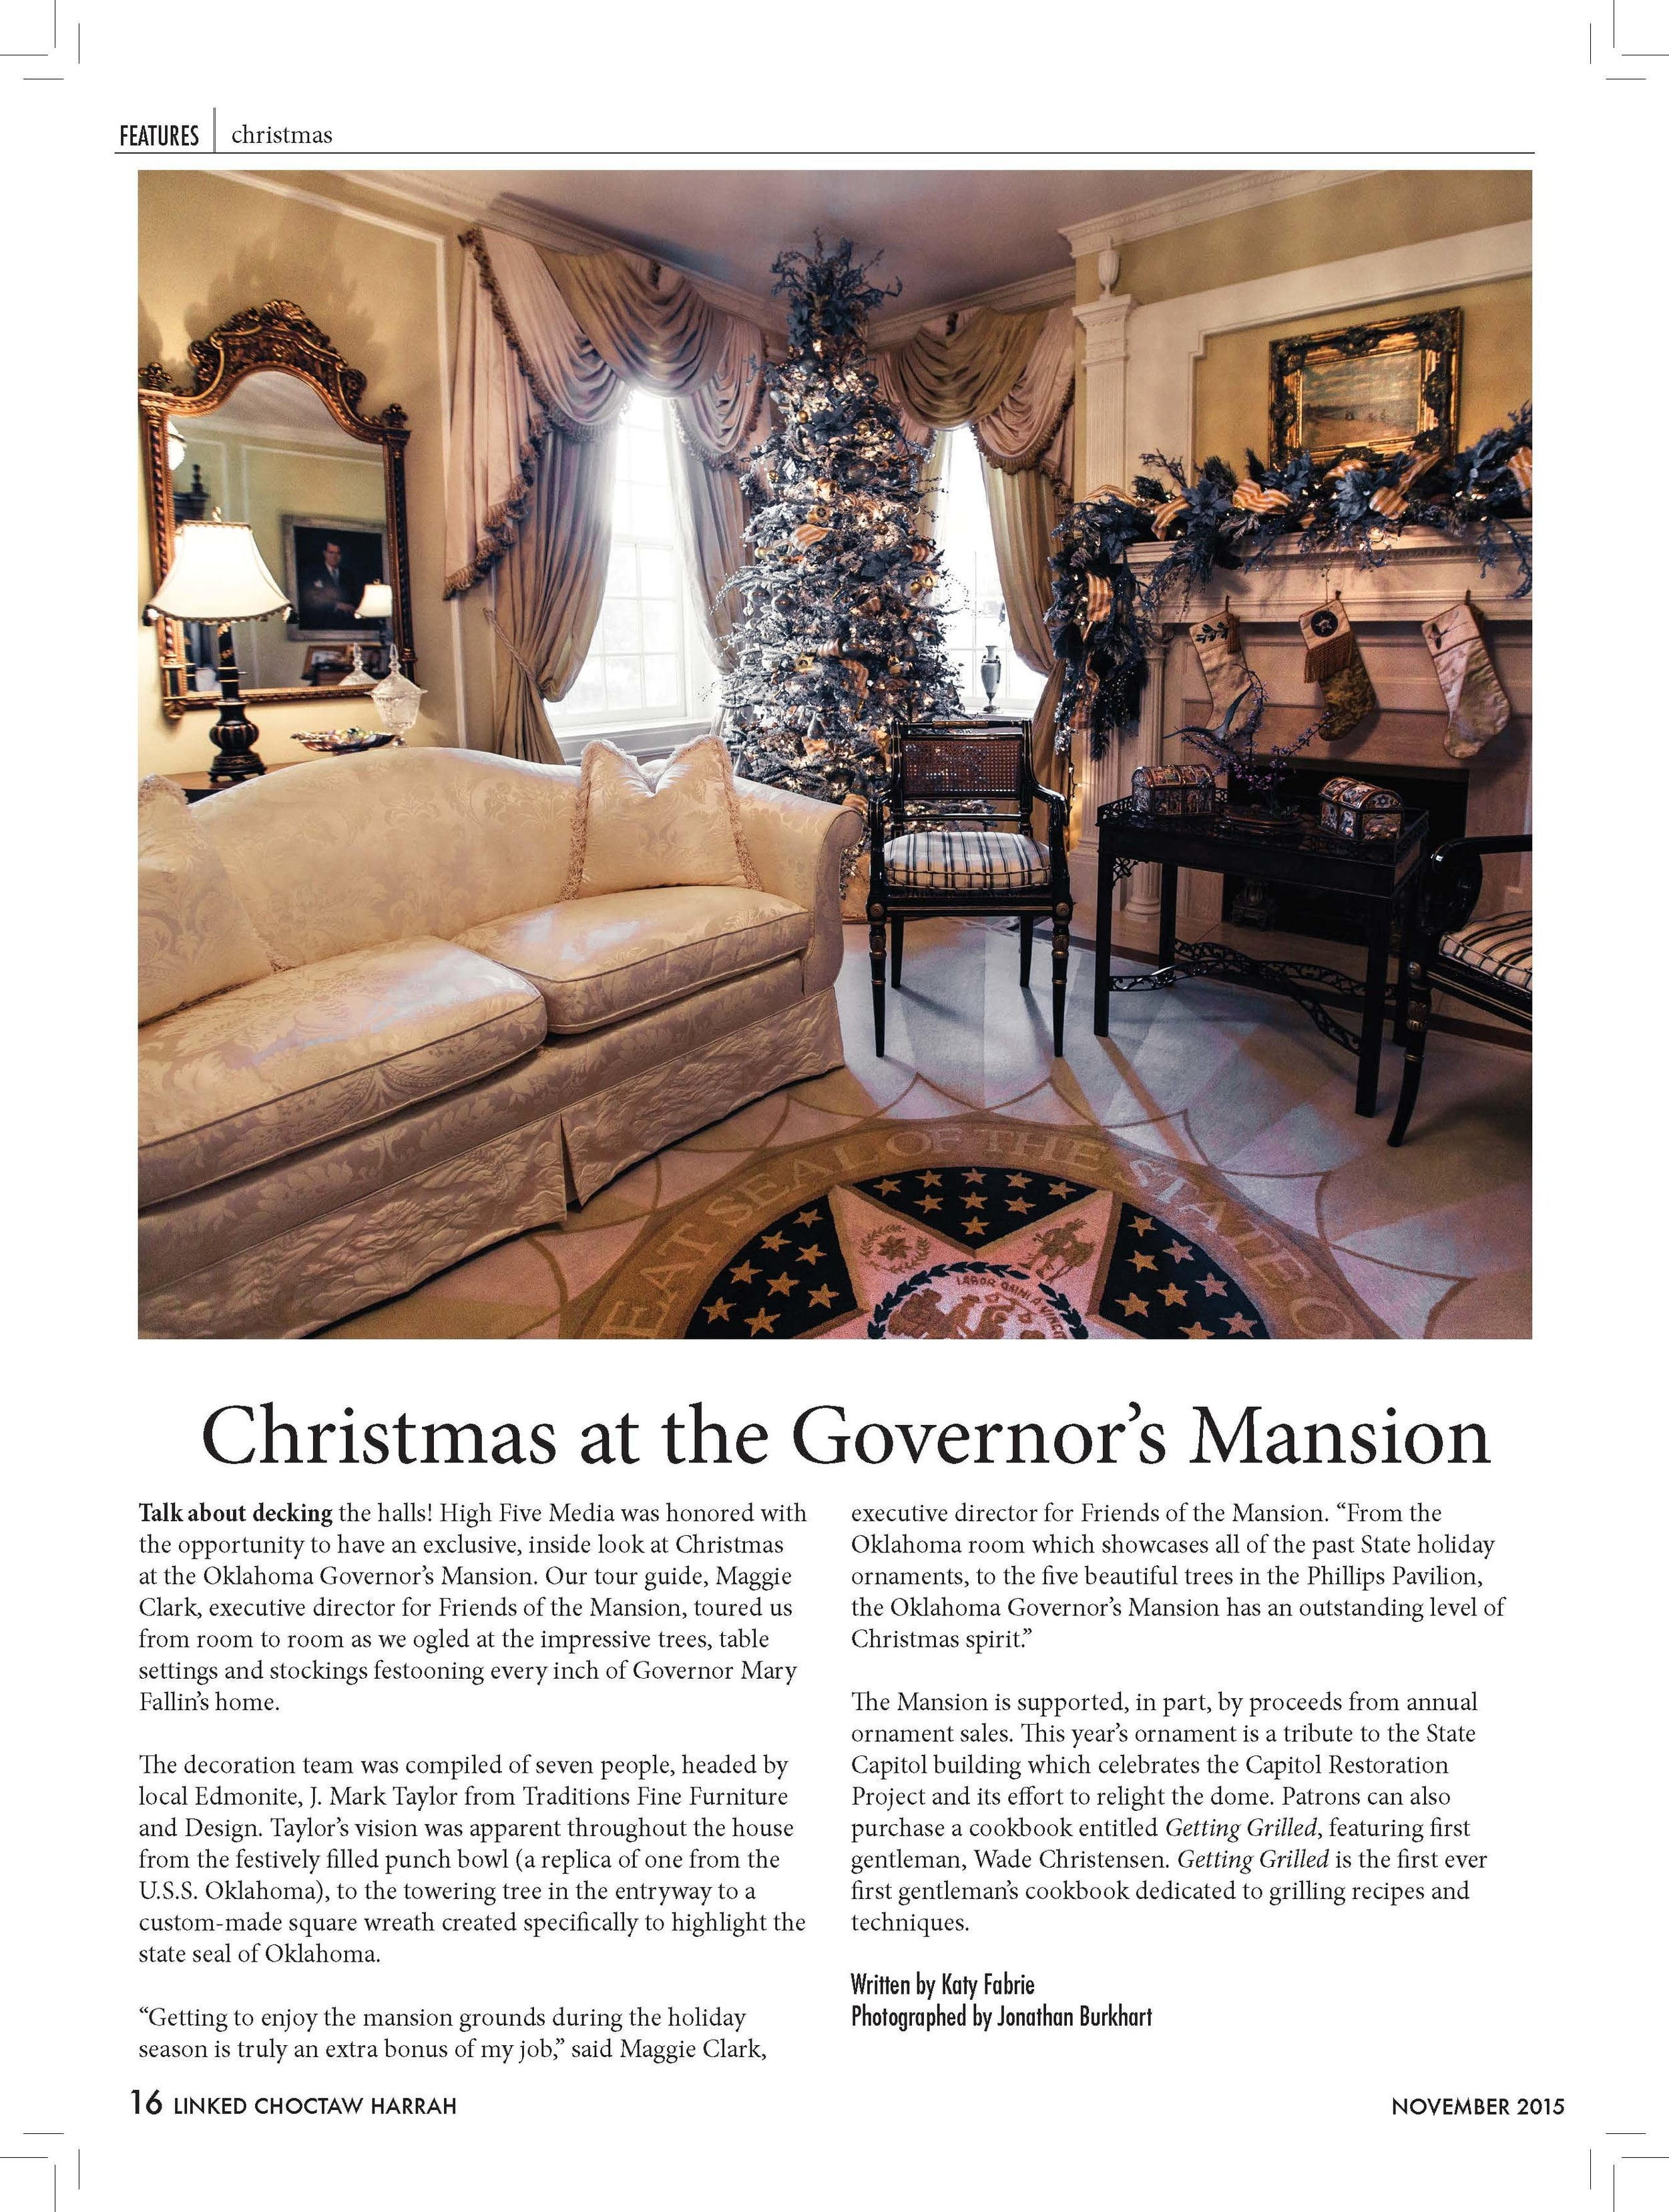 """Christmas at the Governor's Mansion  Talk about decking the halls! High Five Media was honored with the opportunity to have an exclusive, inside look at Christmas at the Oklahoma Governor's Mansion. Our tour guide, Maggie Clark, executive director for Friends of the Mansion, toured us from room to room as we ogled at the impressive trees, table settings and stockings festooning every inch of Governor Mary Fallin's home. The decoration team was compiled of seven people, headed by local Edmonite, J. Mark Taylor from Traditions Fine Furniture and Design. Taylor's vision was apparent throughout the house from the festively filled punch bowl (a replica of one from the U.S.S. Oklahoma), to the towering tree in the entryway to a custom-made square wreath created specifically to highlight the state seal of Oklahoma. """"Getting to enjoy the mansion grounds during the holiday season is truly an extra bonus of my job,"""" said Maggie Clark,  executive director for Friends of the Mansion. """"From the Oklahoma room which showcases all of the past State holiday ornaments, to the five beautiful trees in the Phillips Pavilion, the Oklahoma Governor's Mansion has an outstanding level of Christmas spirit."""" The Mansion is supported, in part, by proceeds from annual ornament sales. This year's ornament is a tribute to the State Capitol building which celebrates the Capitol Restoration Project and its effort to relight the dome. Patrons can also purchase a cookbook entitled Getting Grilled, featuring first gentleman, Wade Christensen. Getting Grilled is the first ever first gentleman's cookbook dedicated to grilling recipes and techniques. Written by Katy Fabrie Photographed by Jonathan Burkhart"""